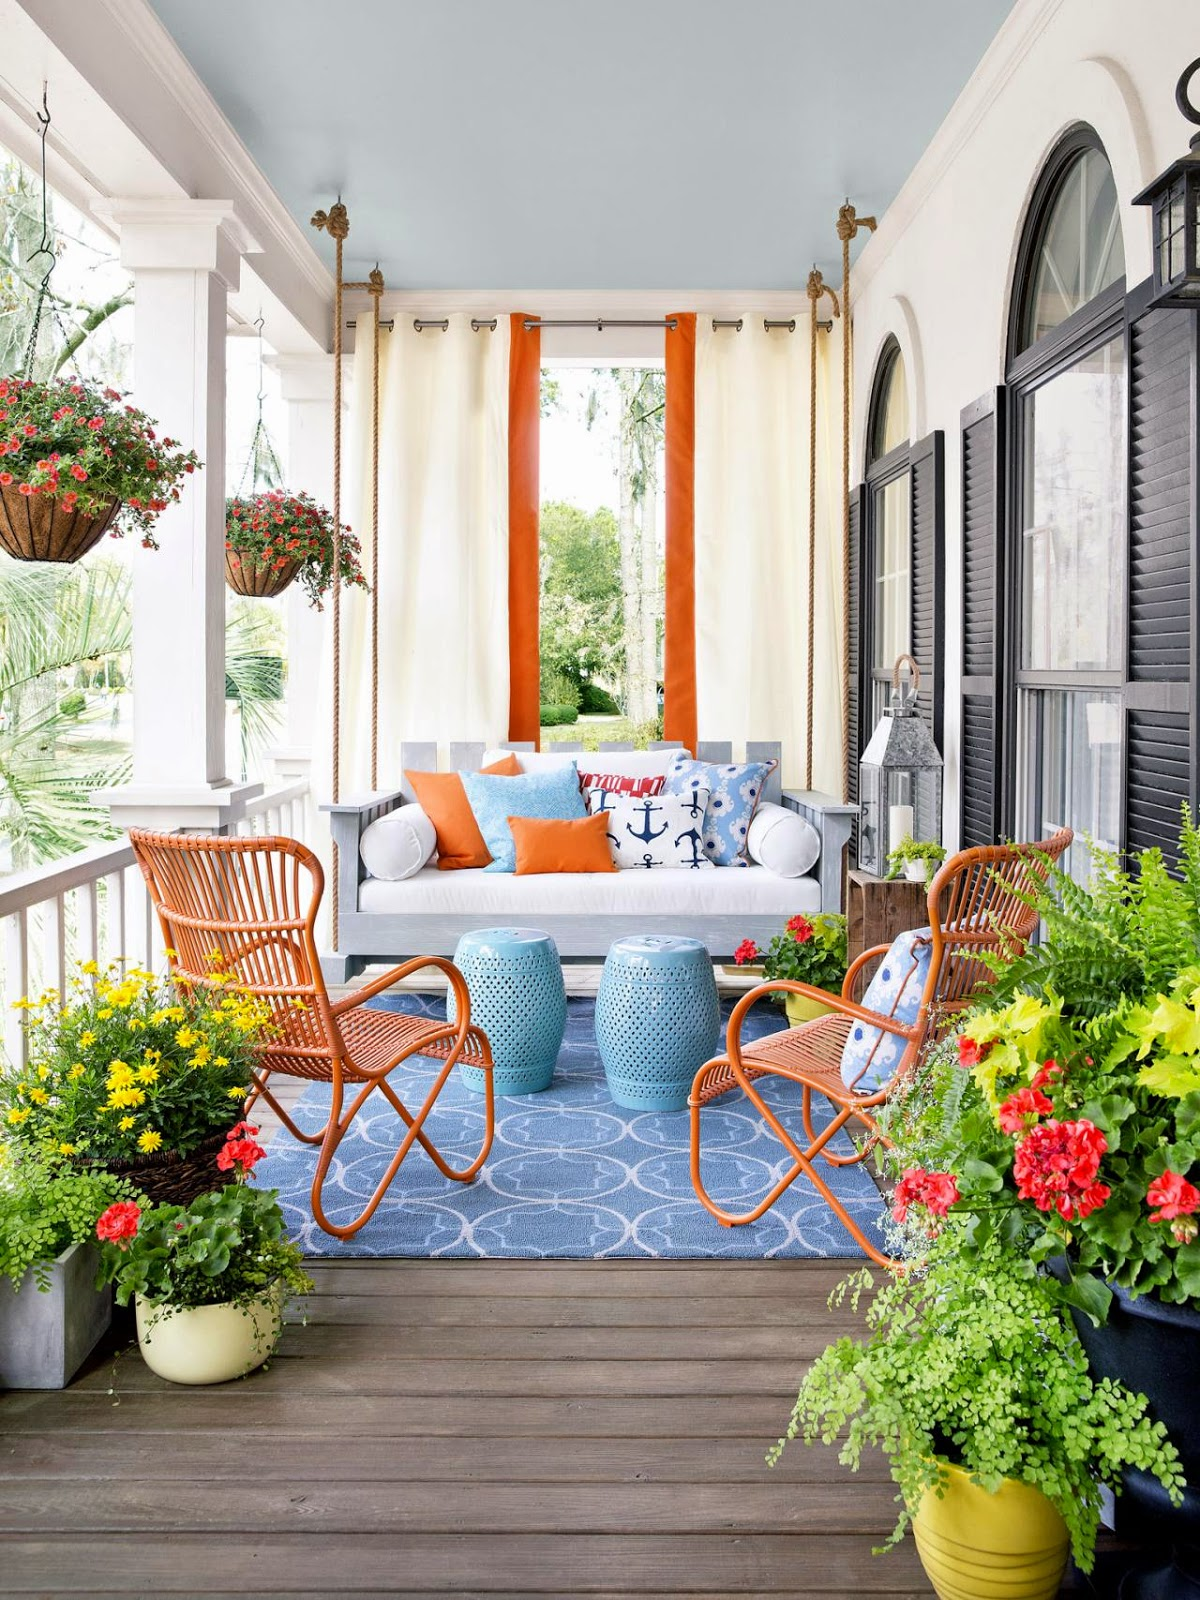 This Setting Combines Potted Plants With Rustic Furnishings To Create An Outdoor Living Room